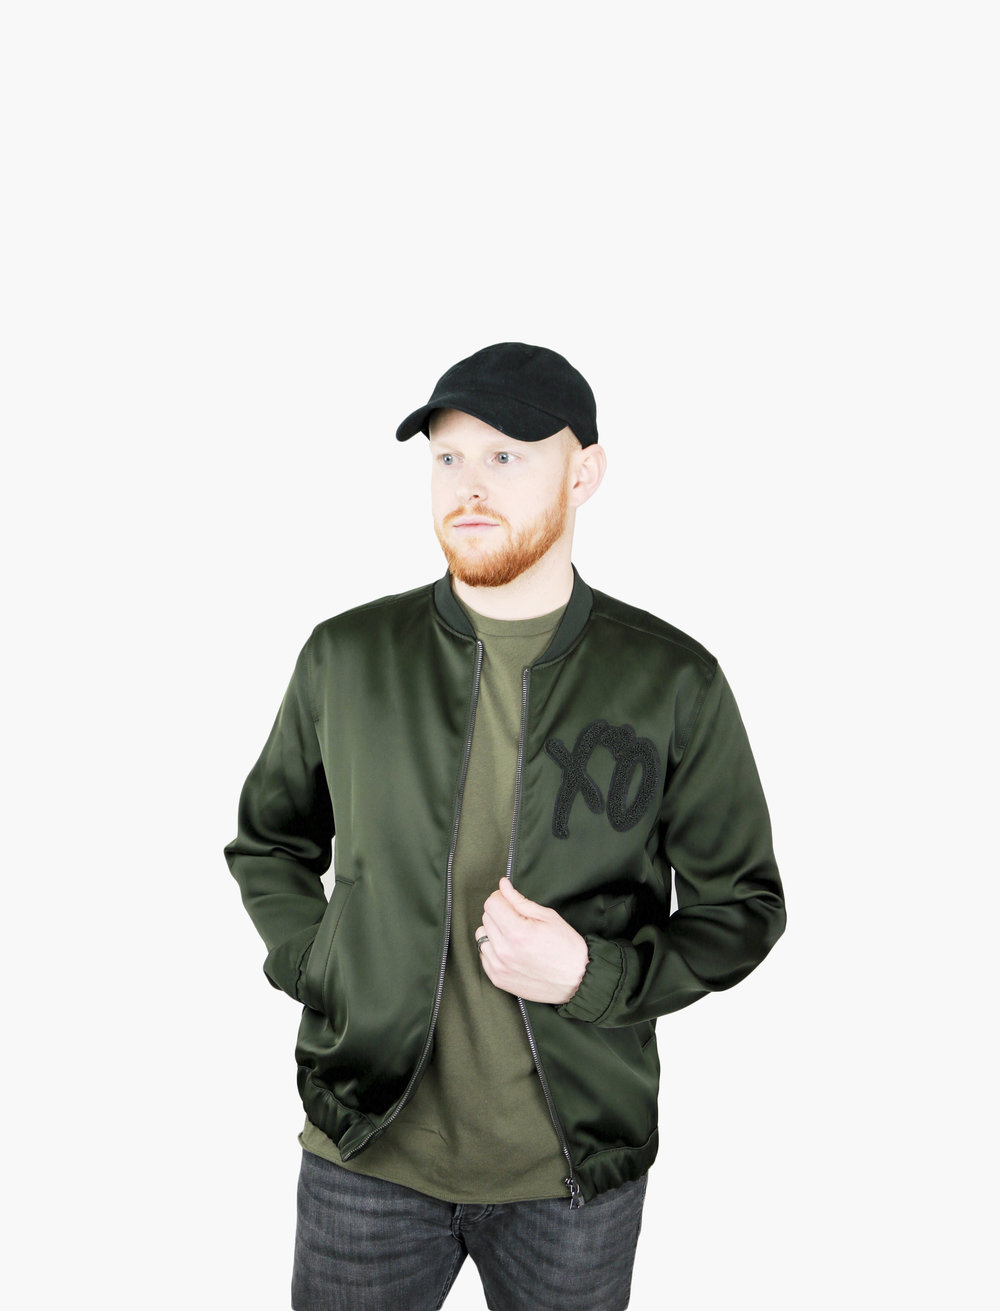 Black Dad Baseball Cap with Army Green Basic Mens Shirt. The Weeknd x H&M Green Satin XO Bomber Jacket